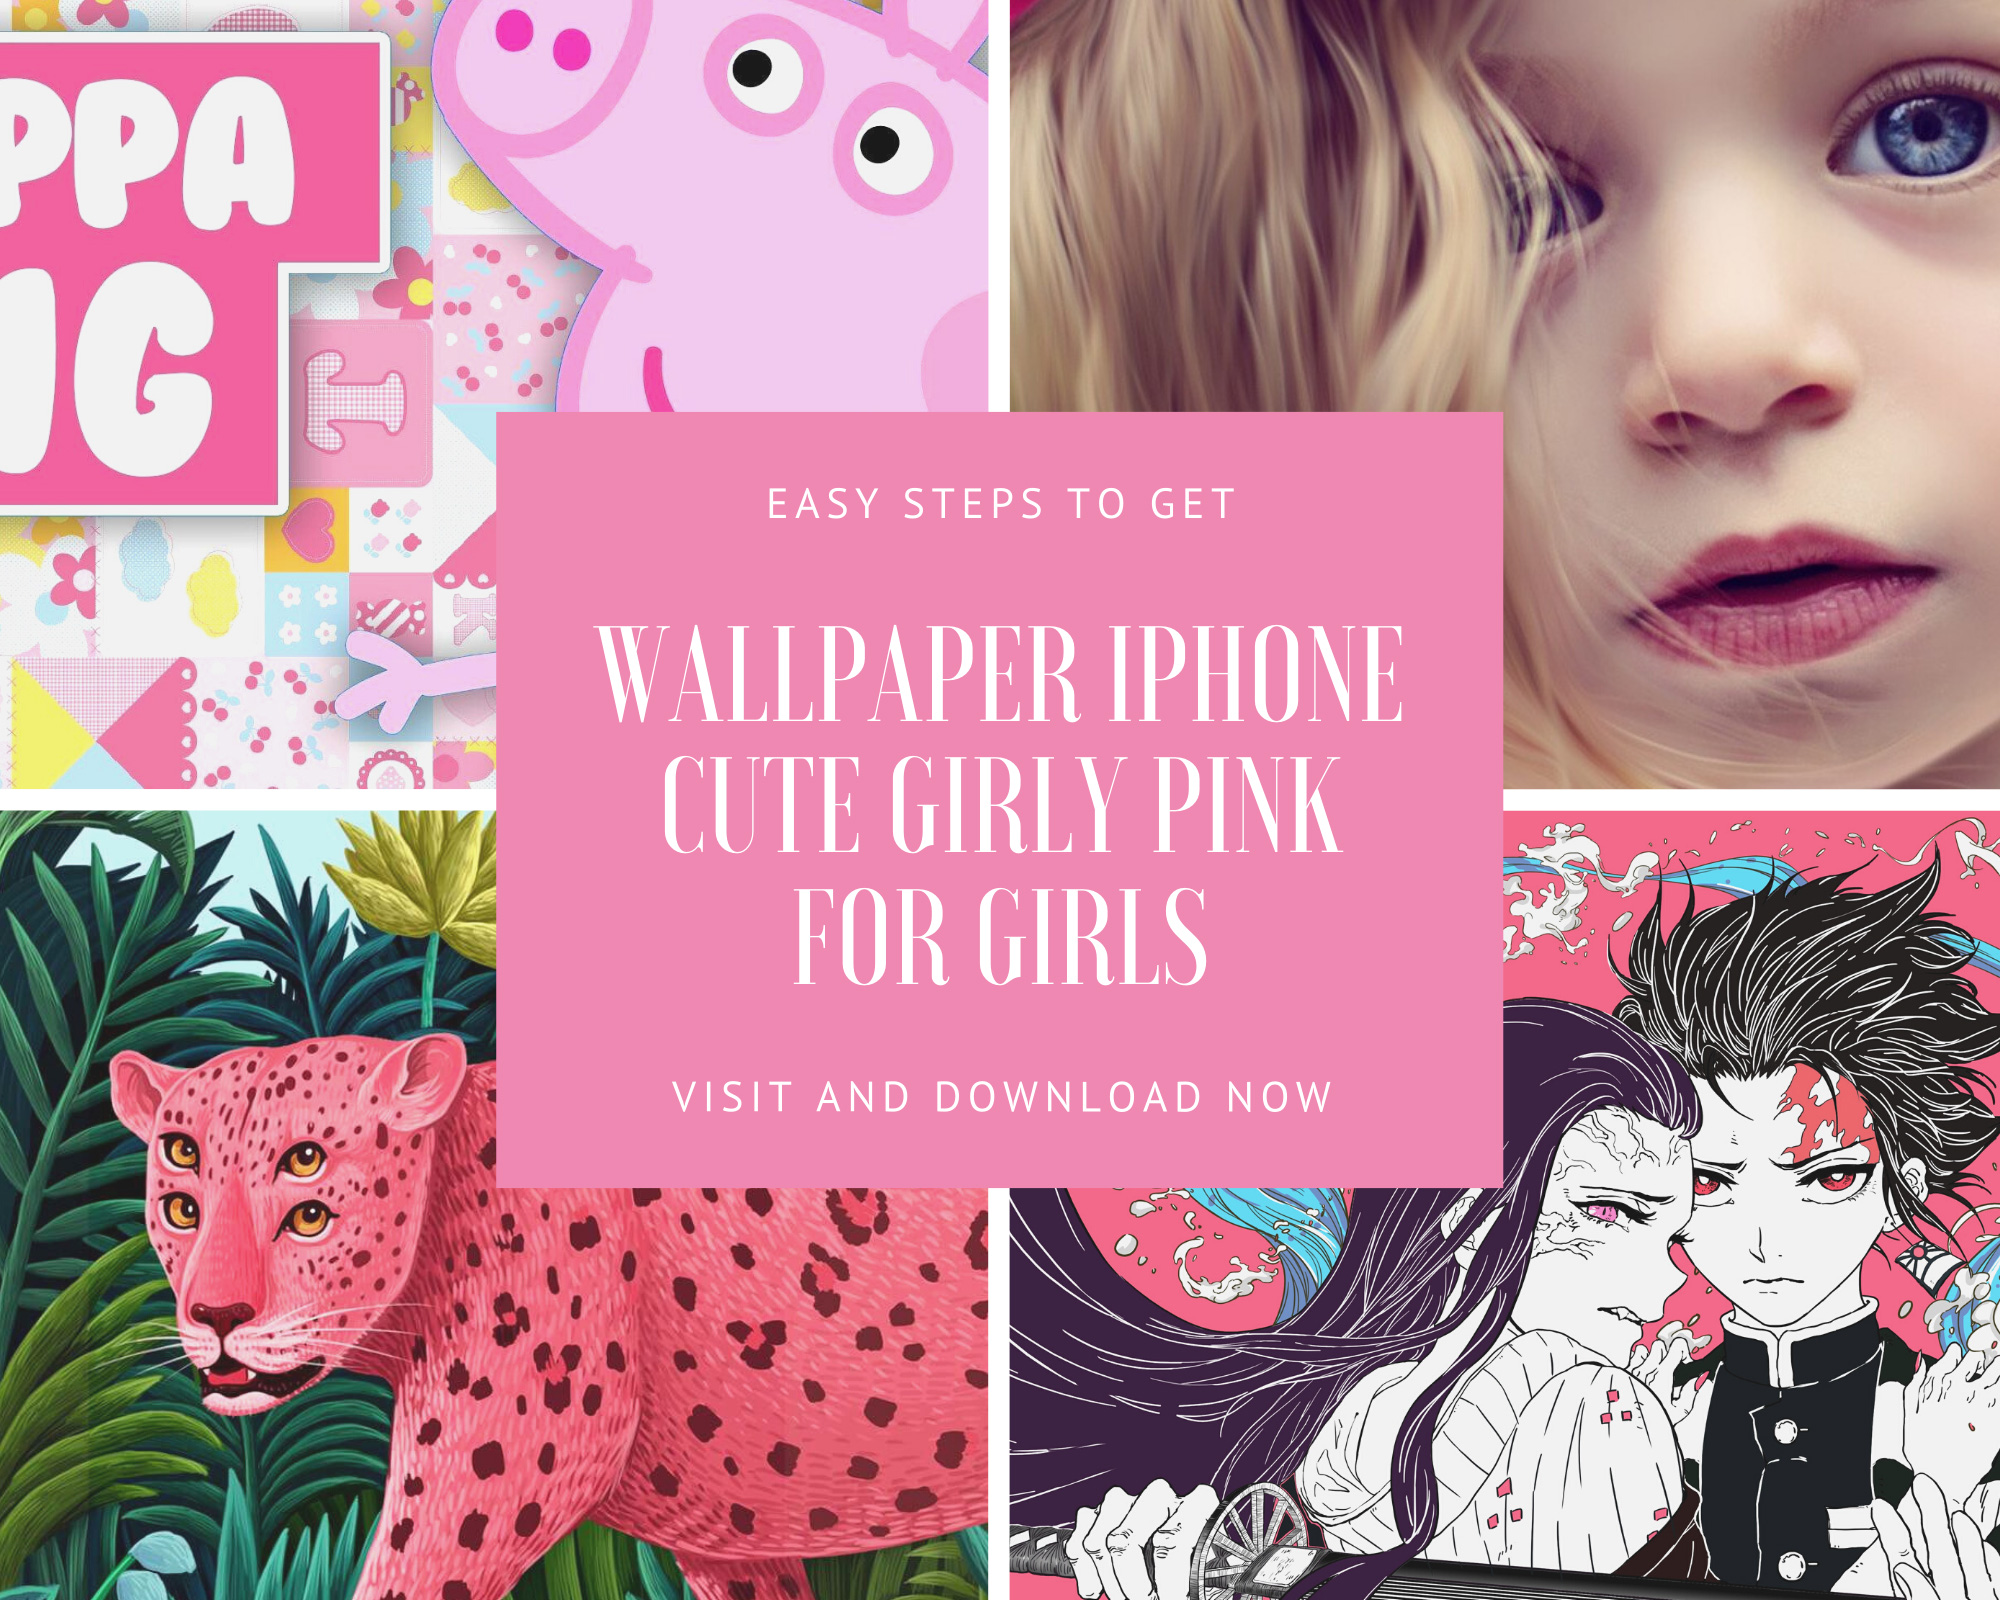 Easy Steps to Get Wallpaper iPhone Cute Girly Pink for Girls